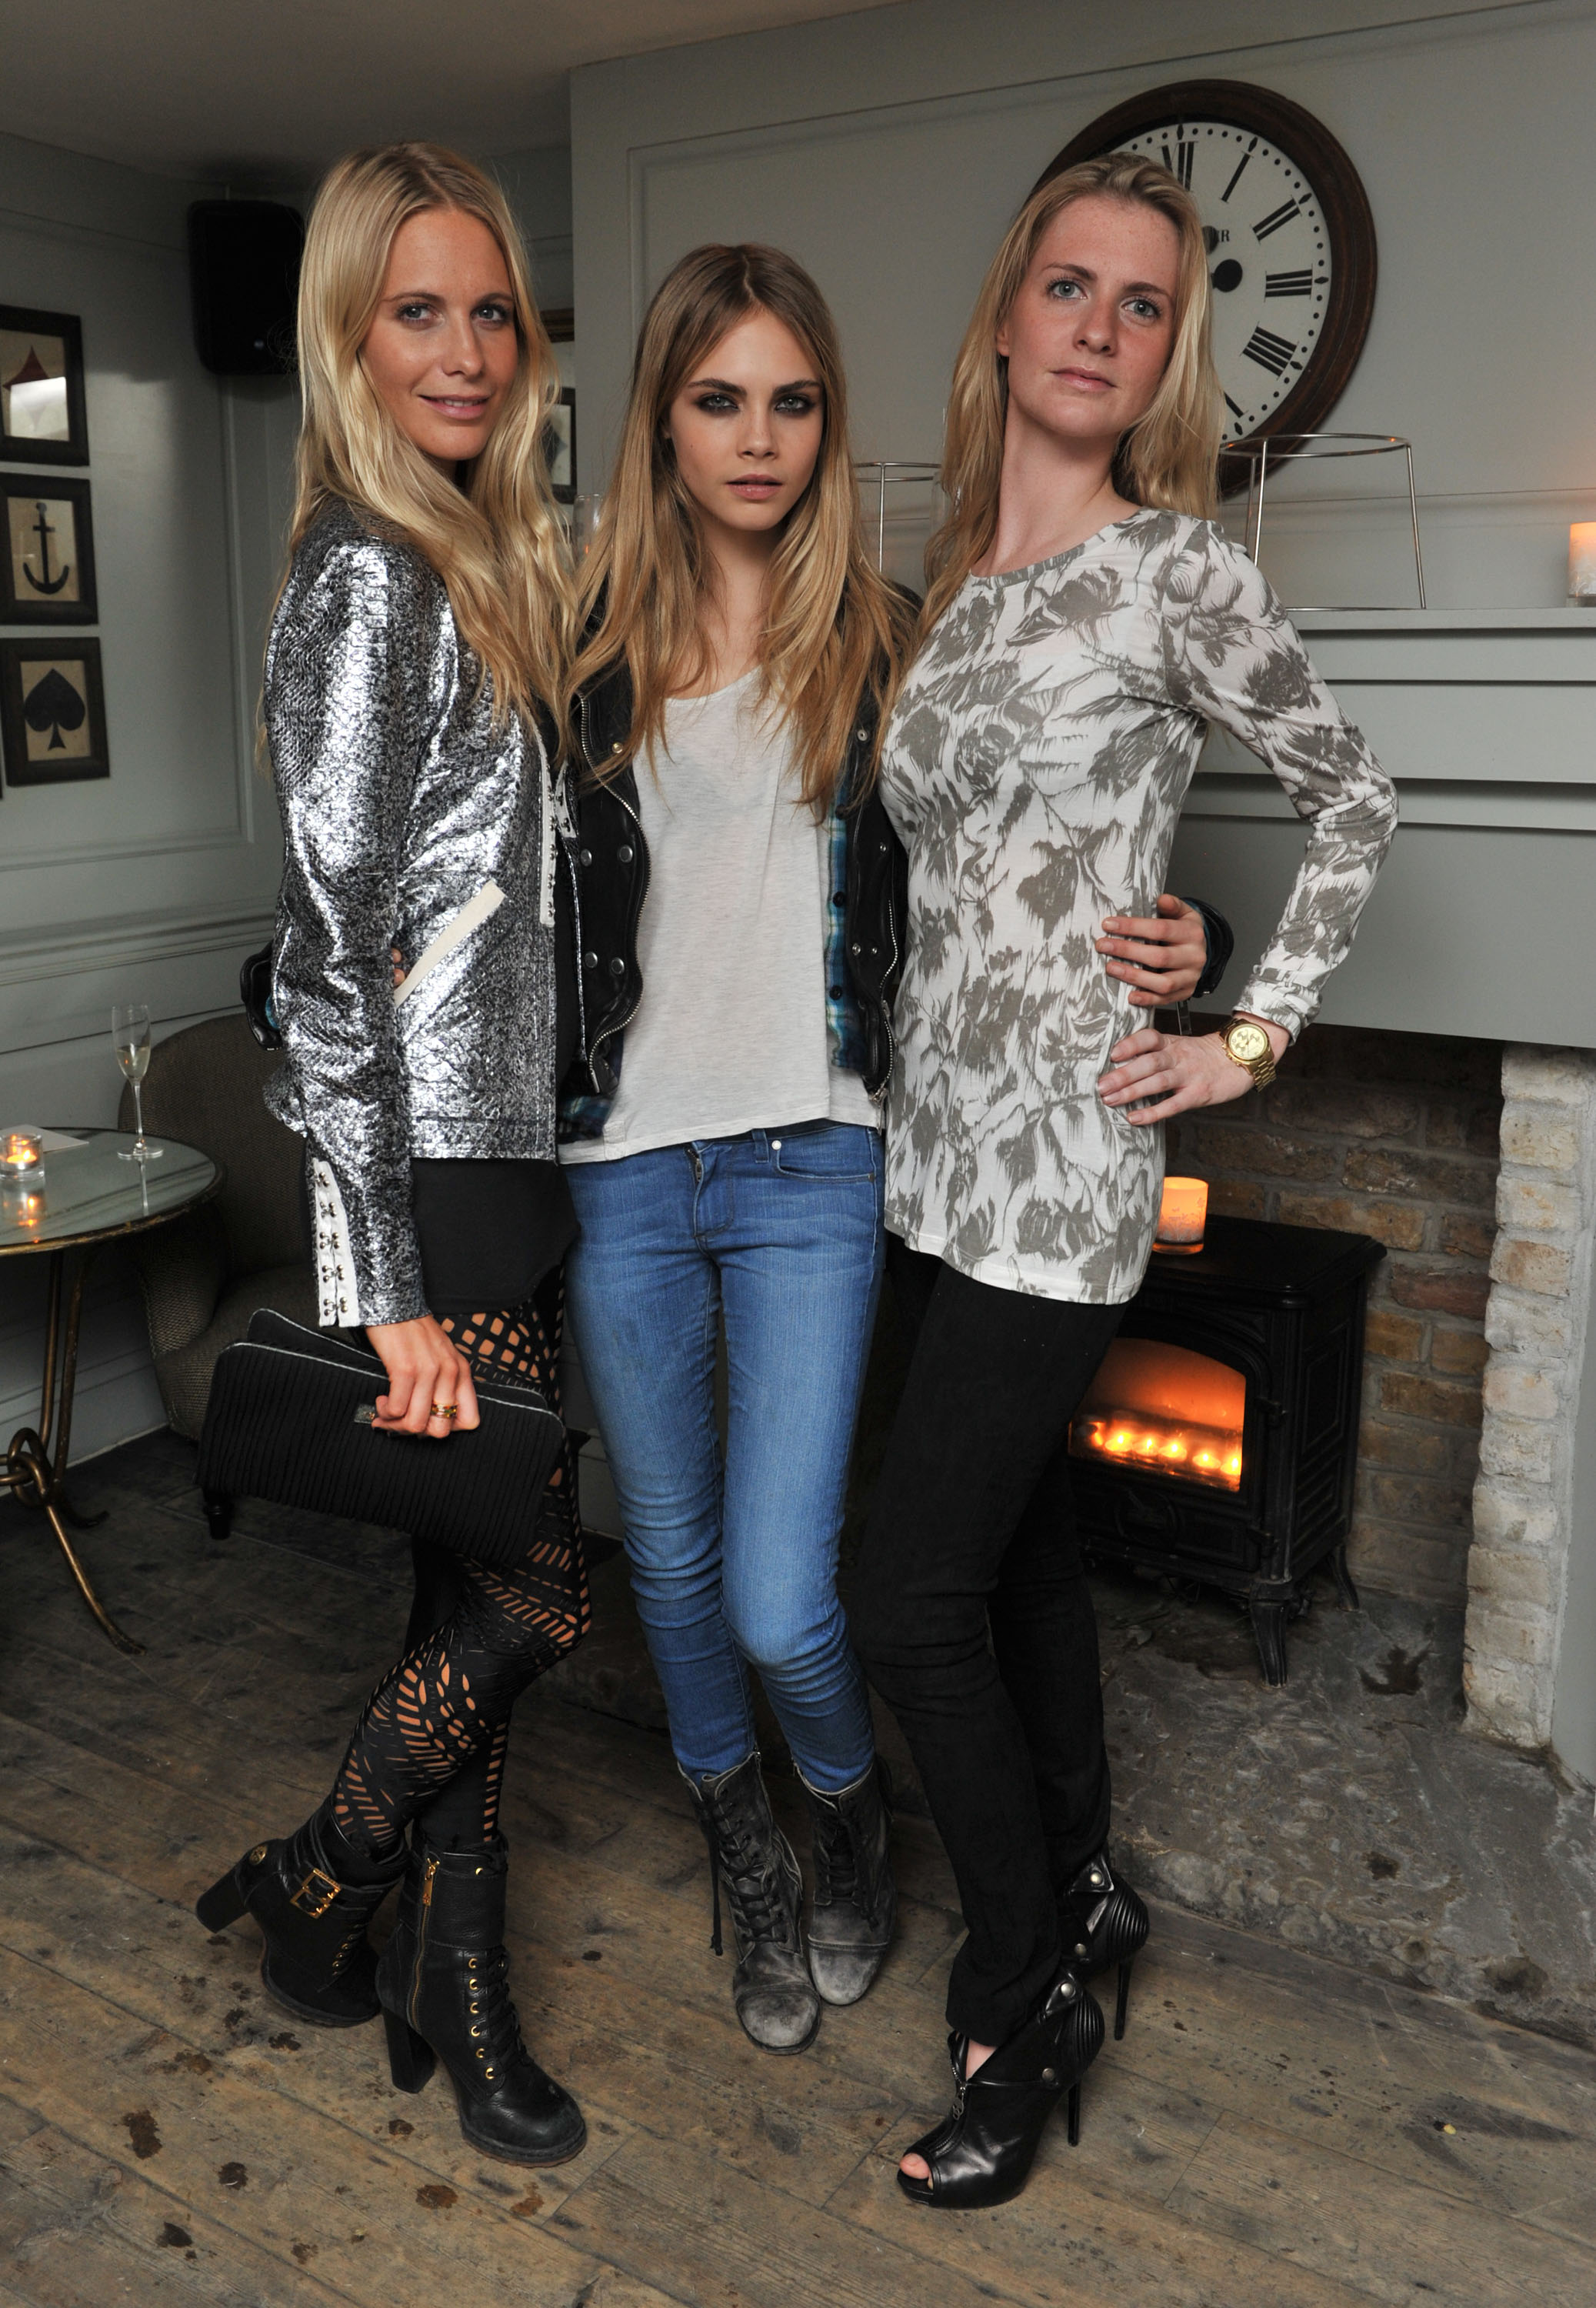 http://modaonlive.files.wordpress.com/2011/03/10-poppy-cara-and-chloe-delevingne.jpg